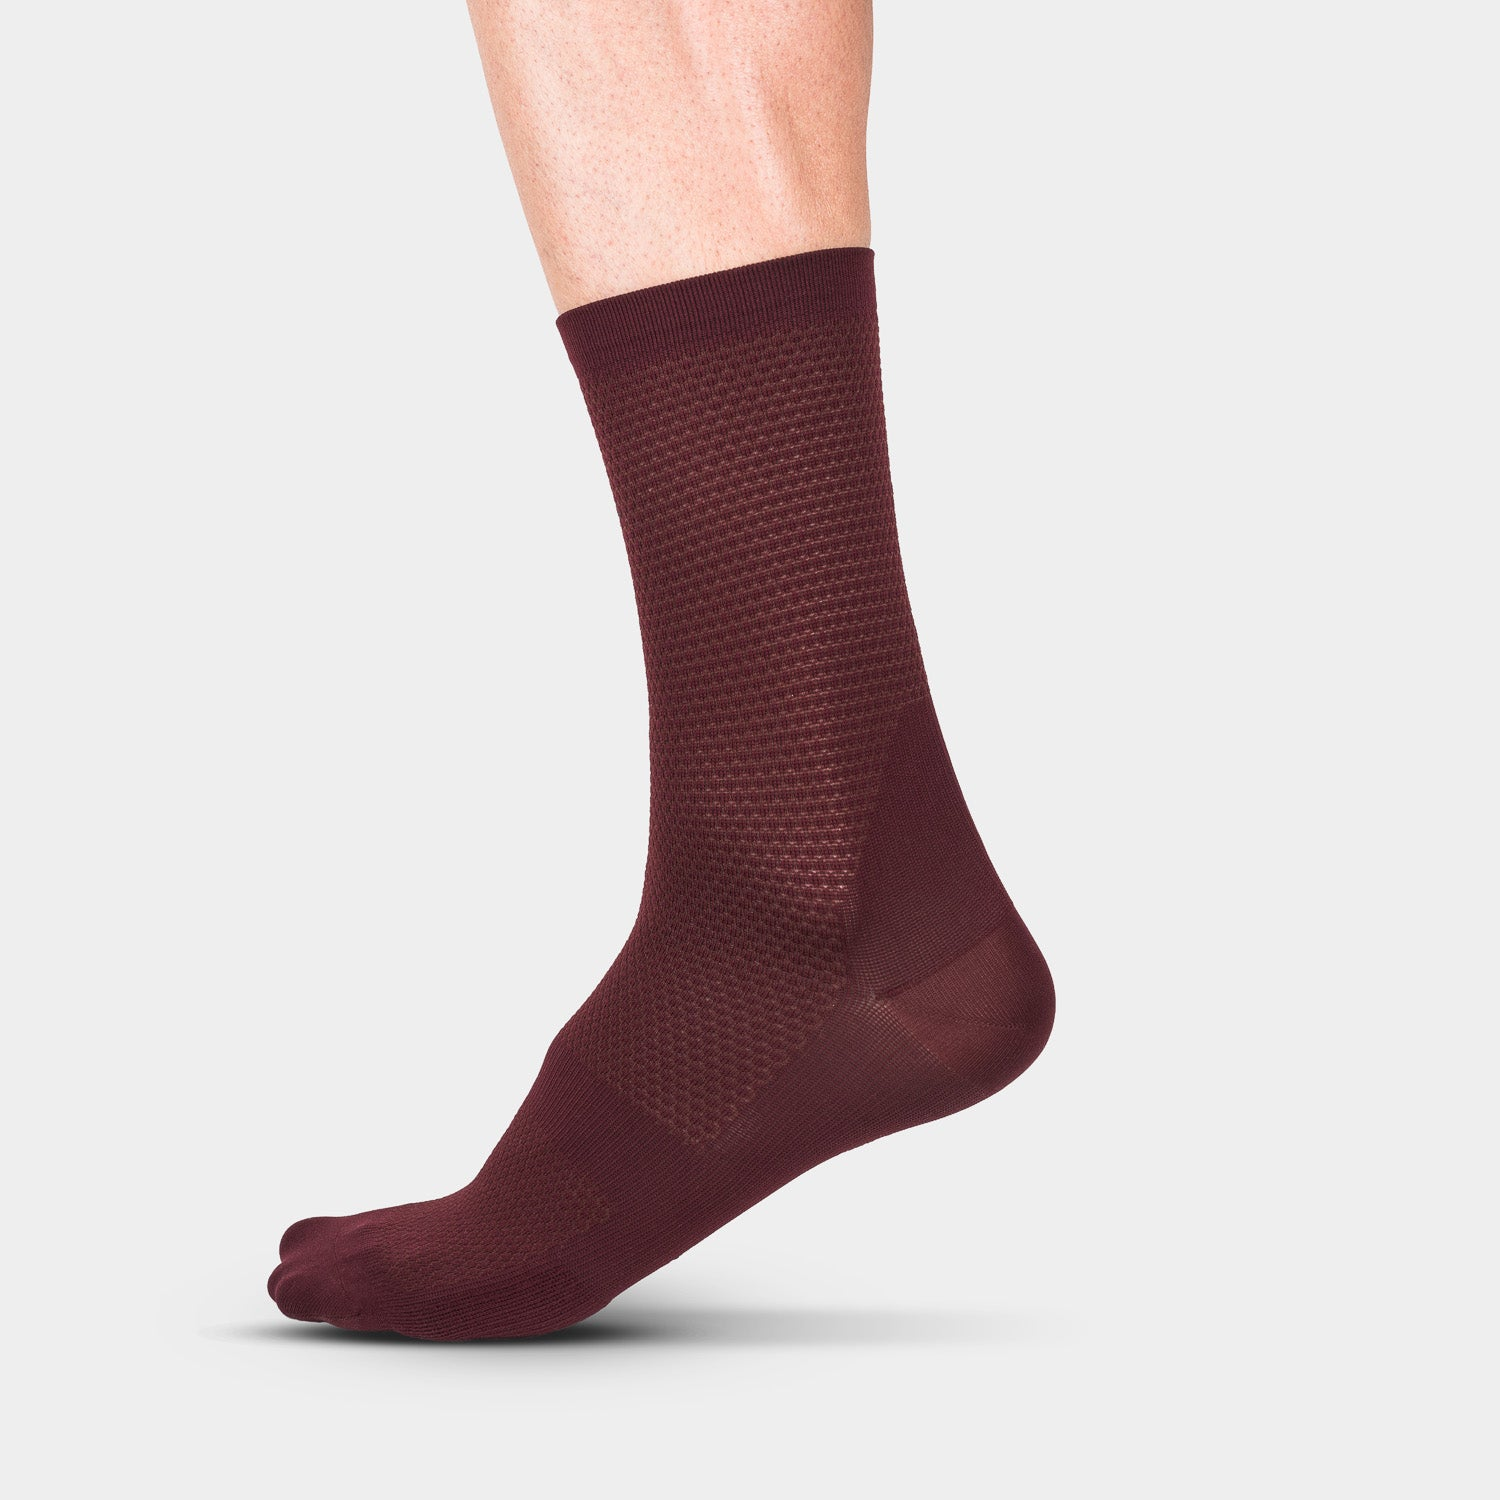 Echelon Socks - Fired Brick